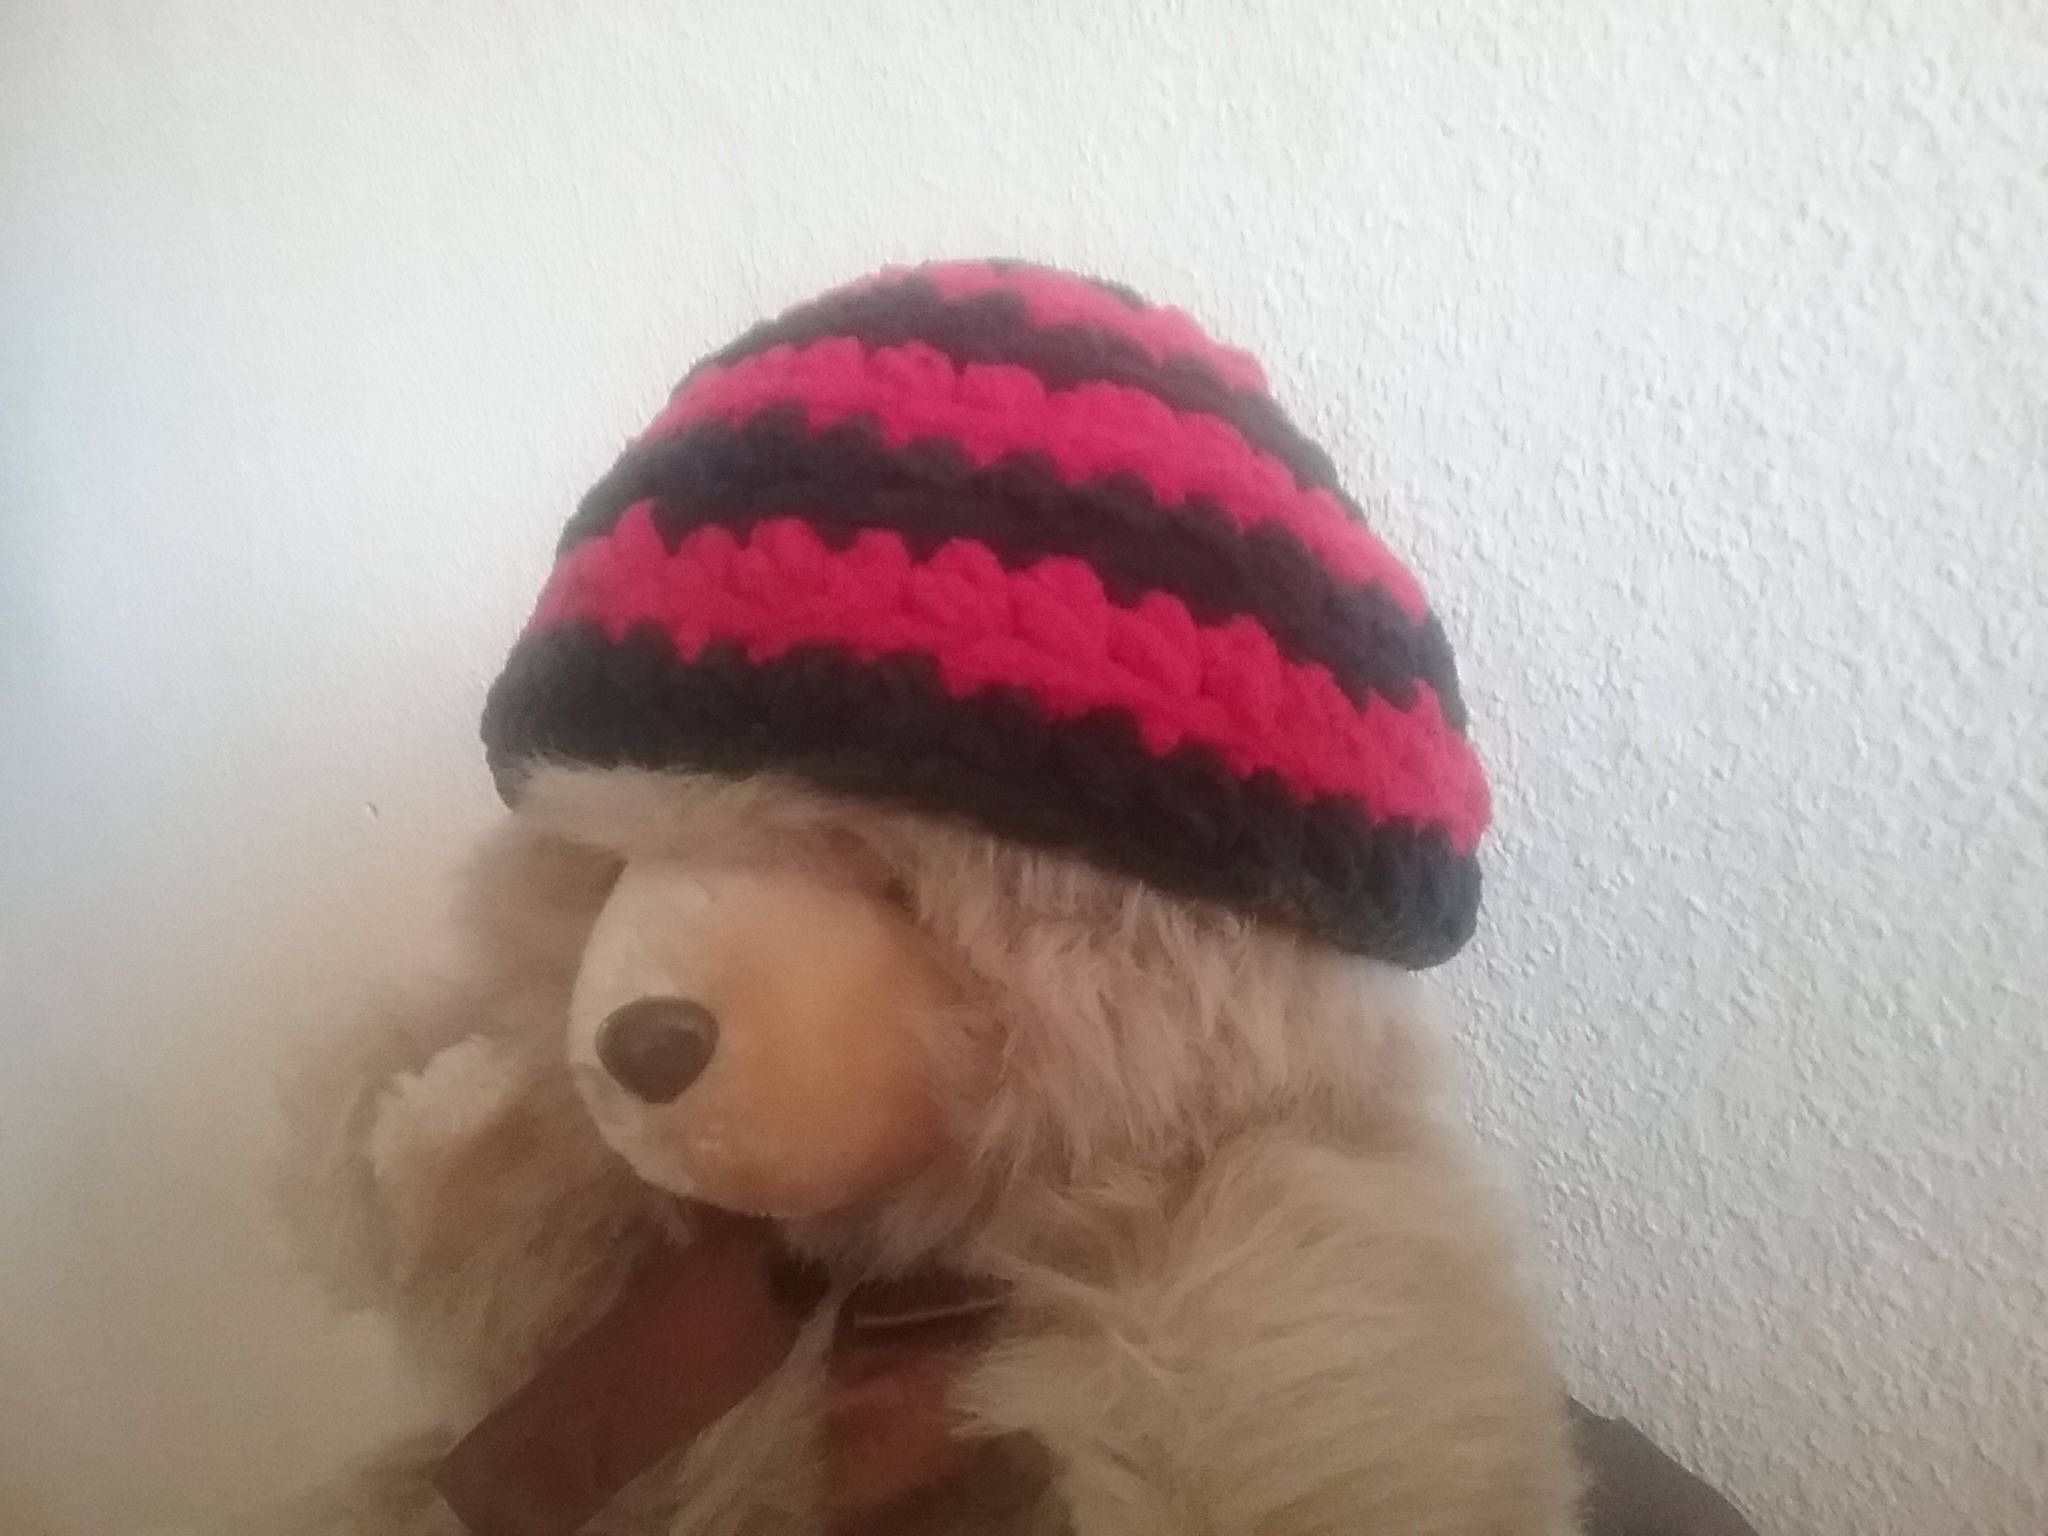 Chubby hot baby hat in red and Black / Hat / head size 44-46 cm ...